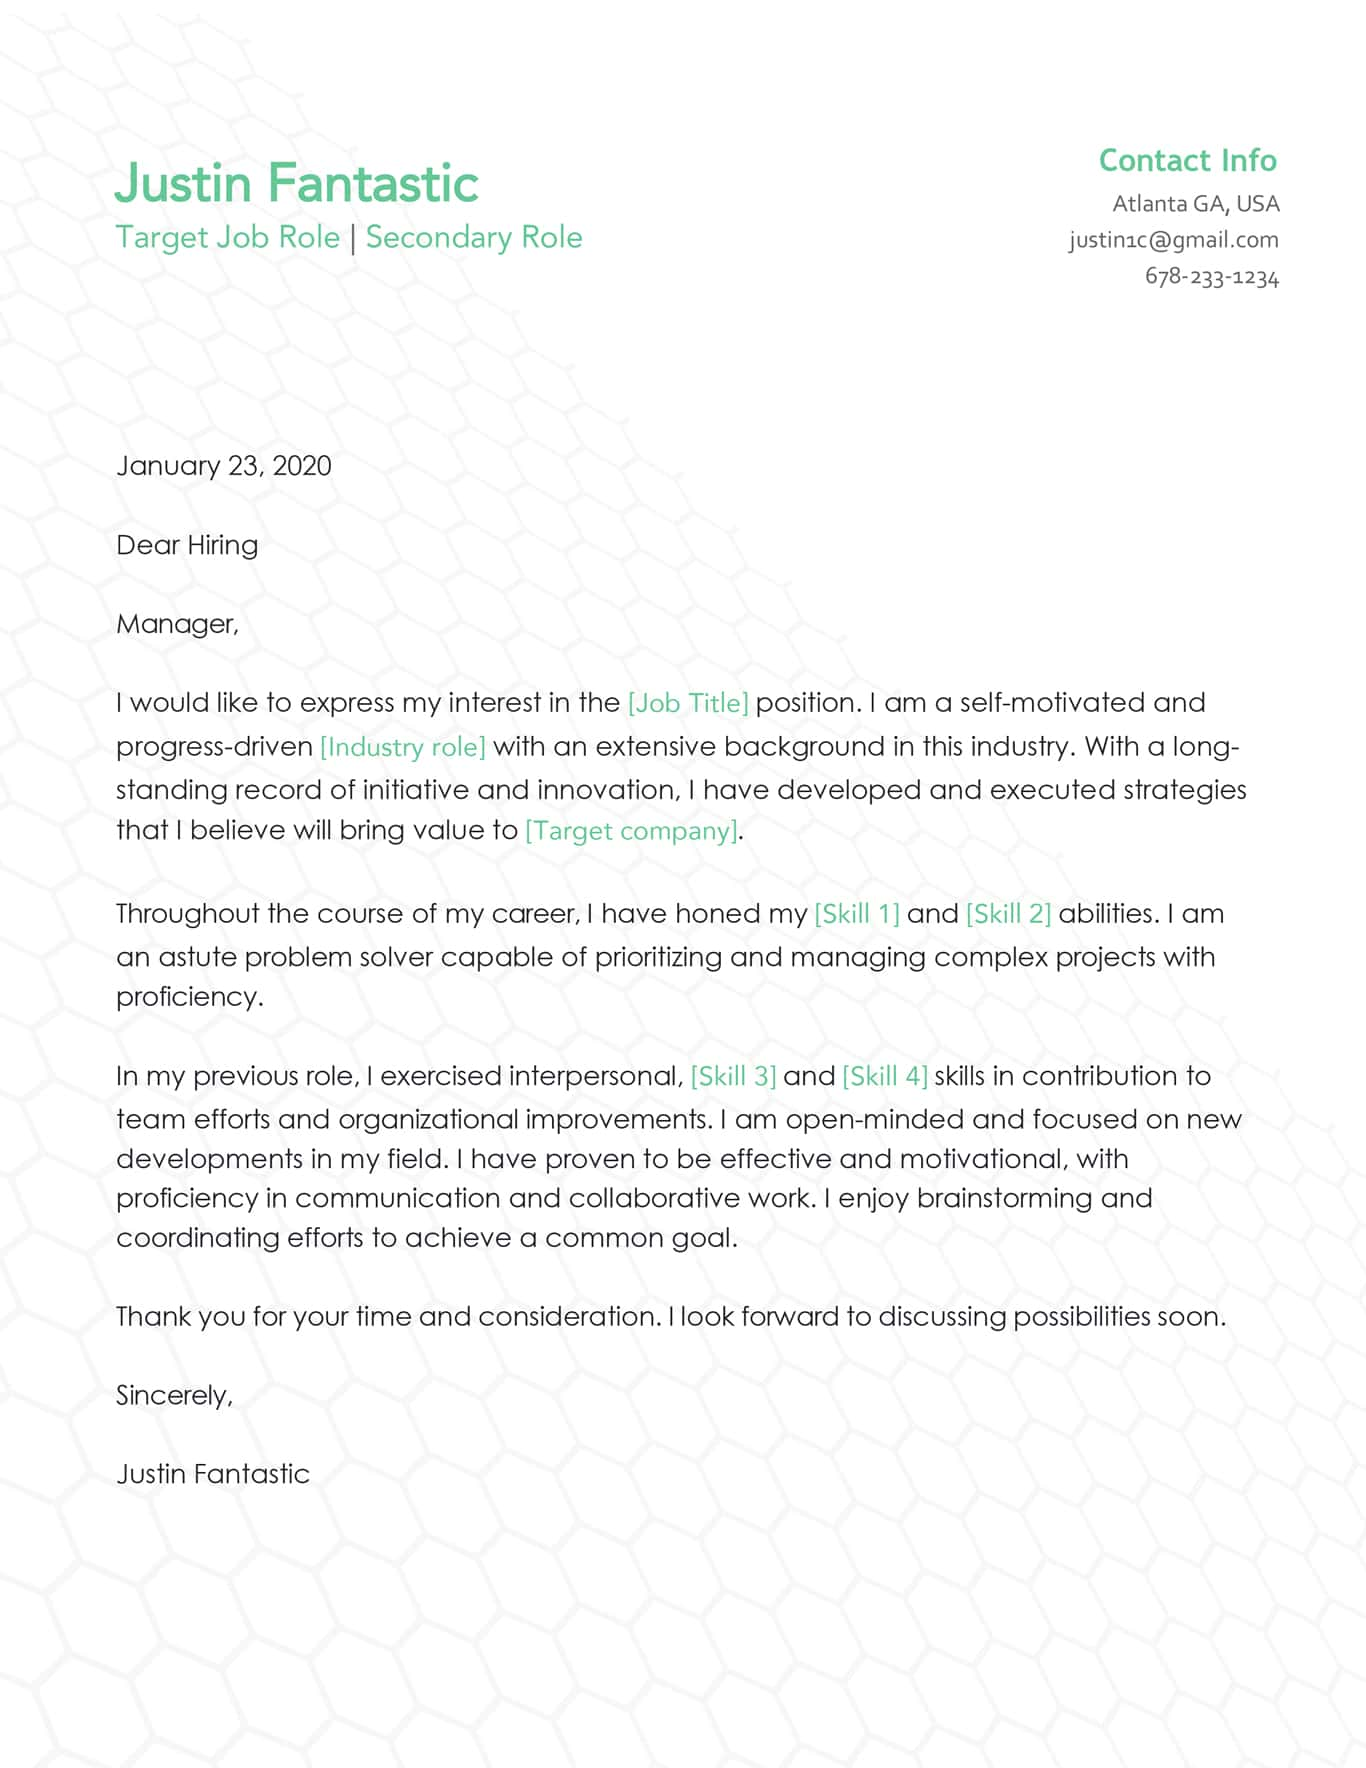 Cover Letter Example Job Application from jobee.io